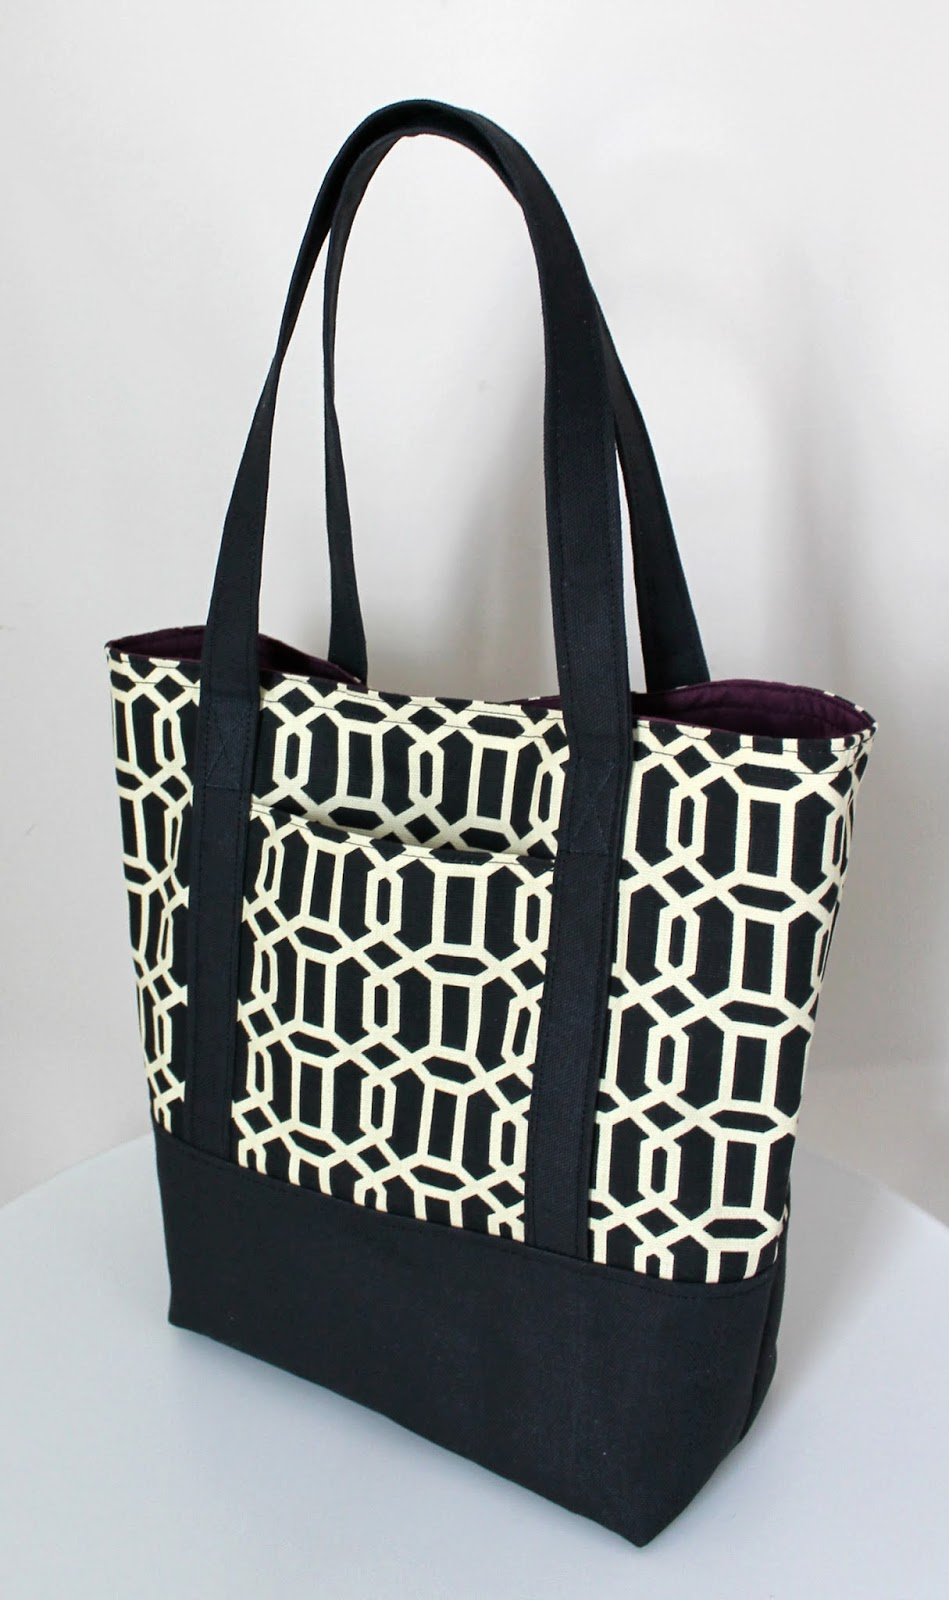 Lined Canvas Tote from The Inspired Wren